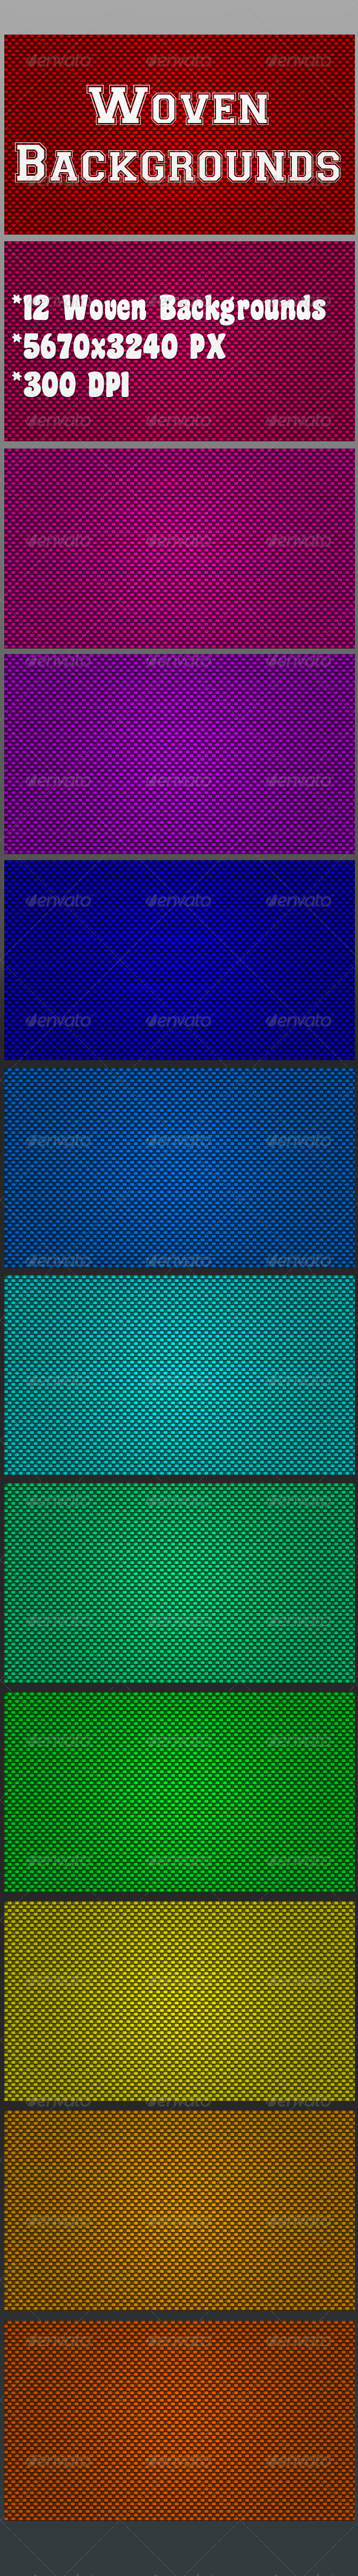 Woven Backgrounds - Patterns Backgrounds